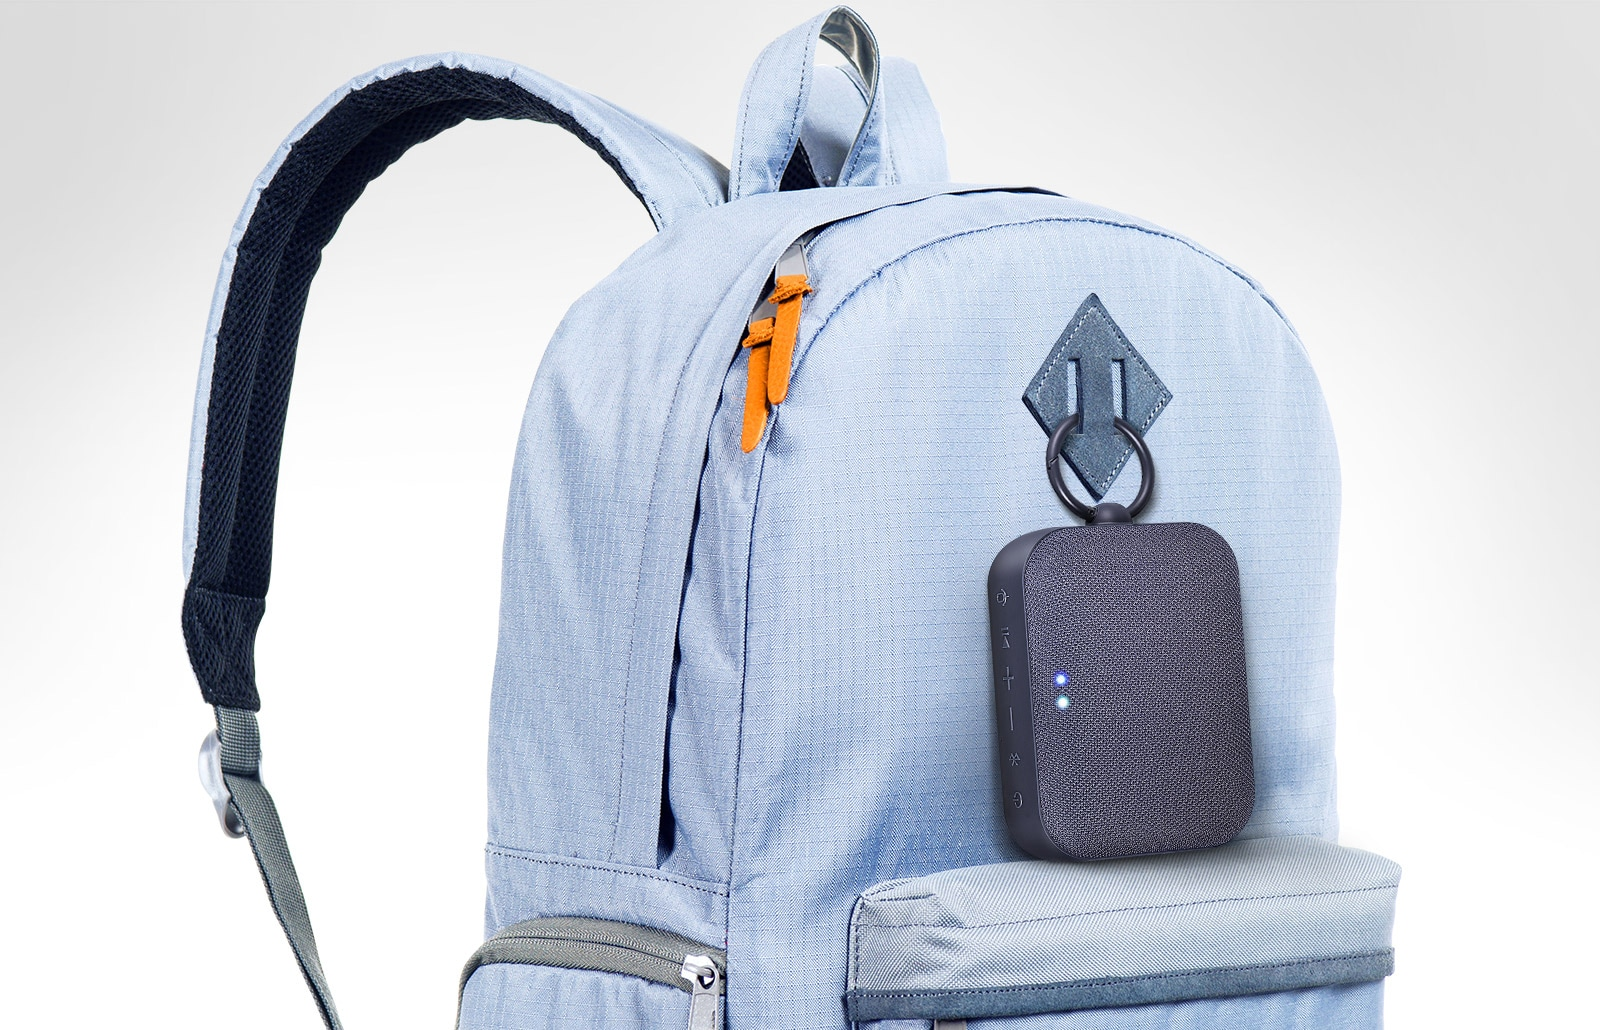 LG XBOOM Go PN1 is clipped onto the sky blue colored backpack.